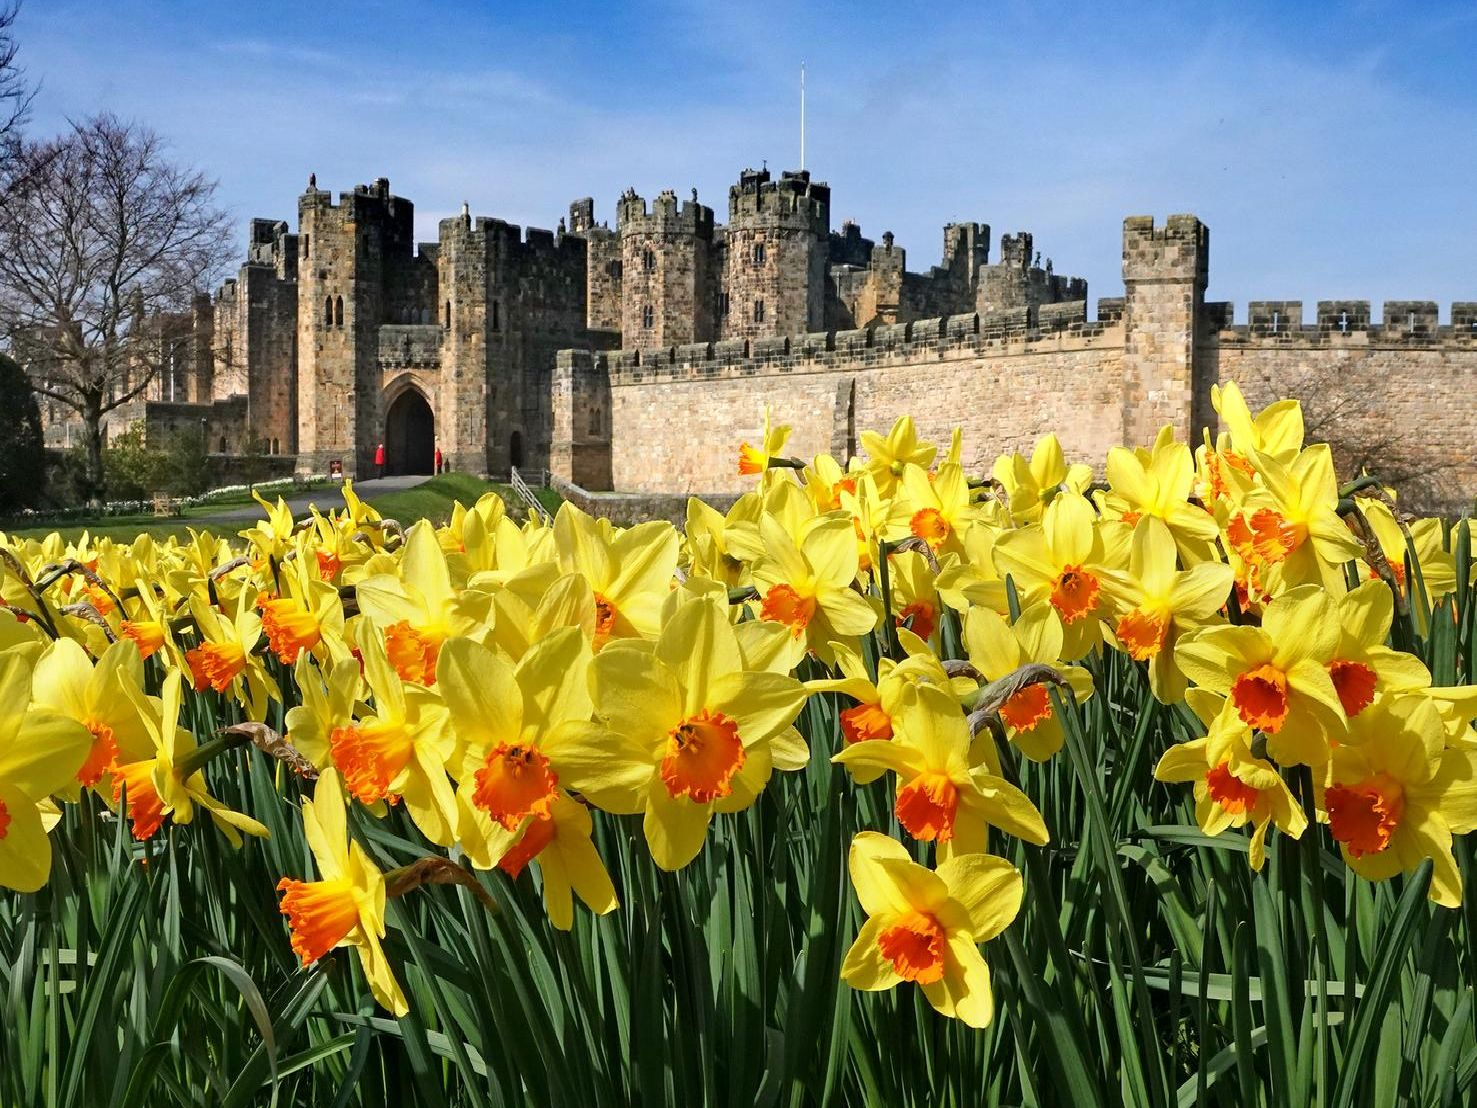 A floral delight at Alnwick Castle - photographs by Jane Coltman.